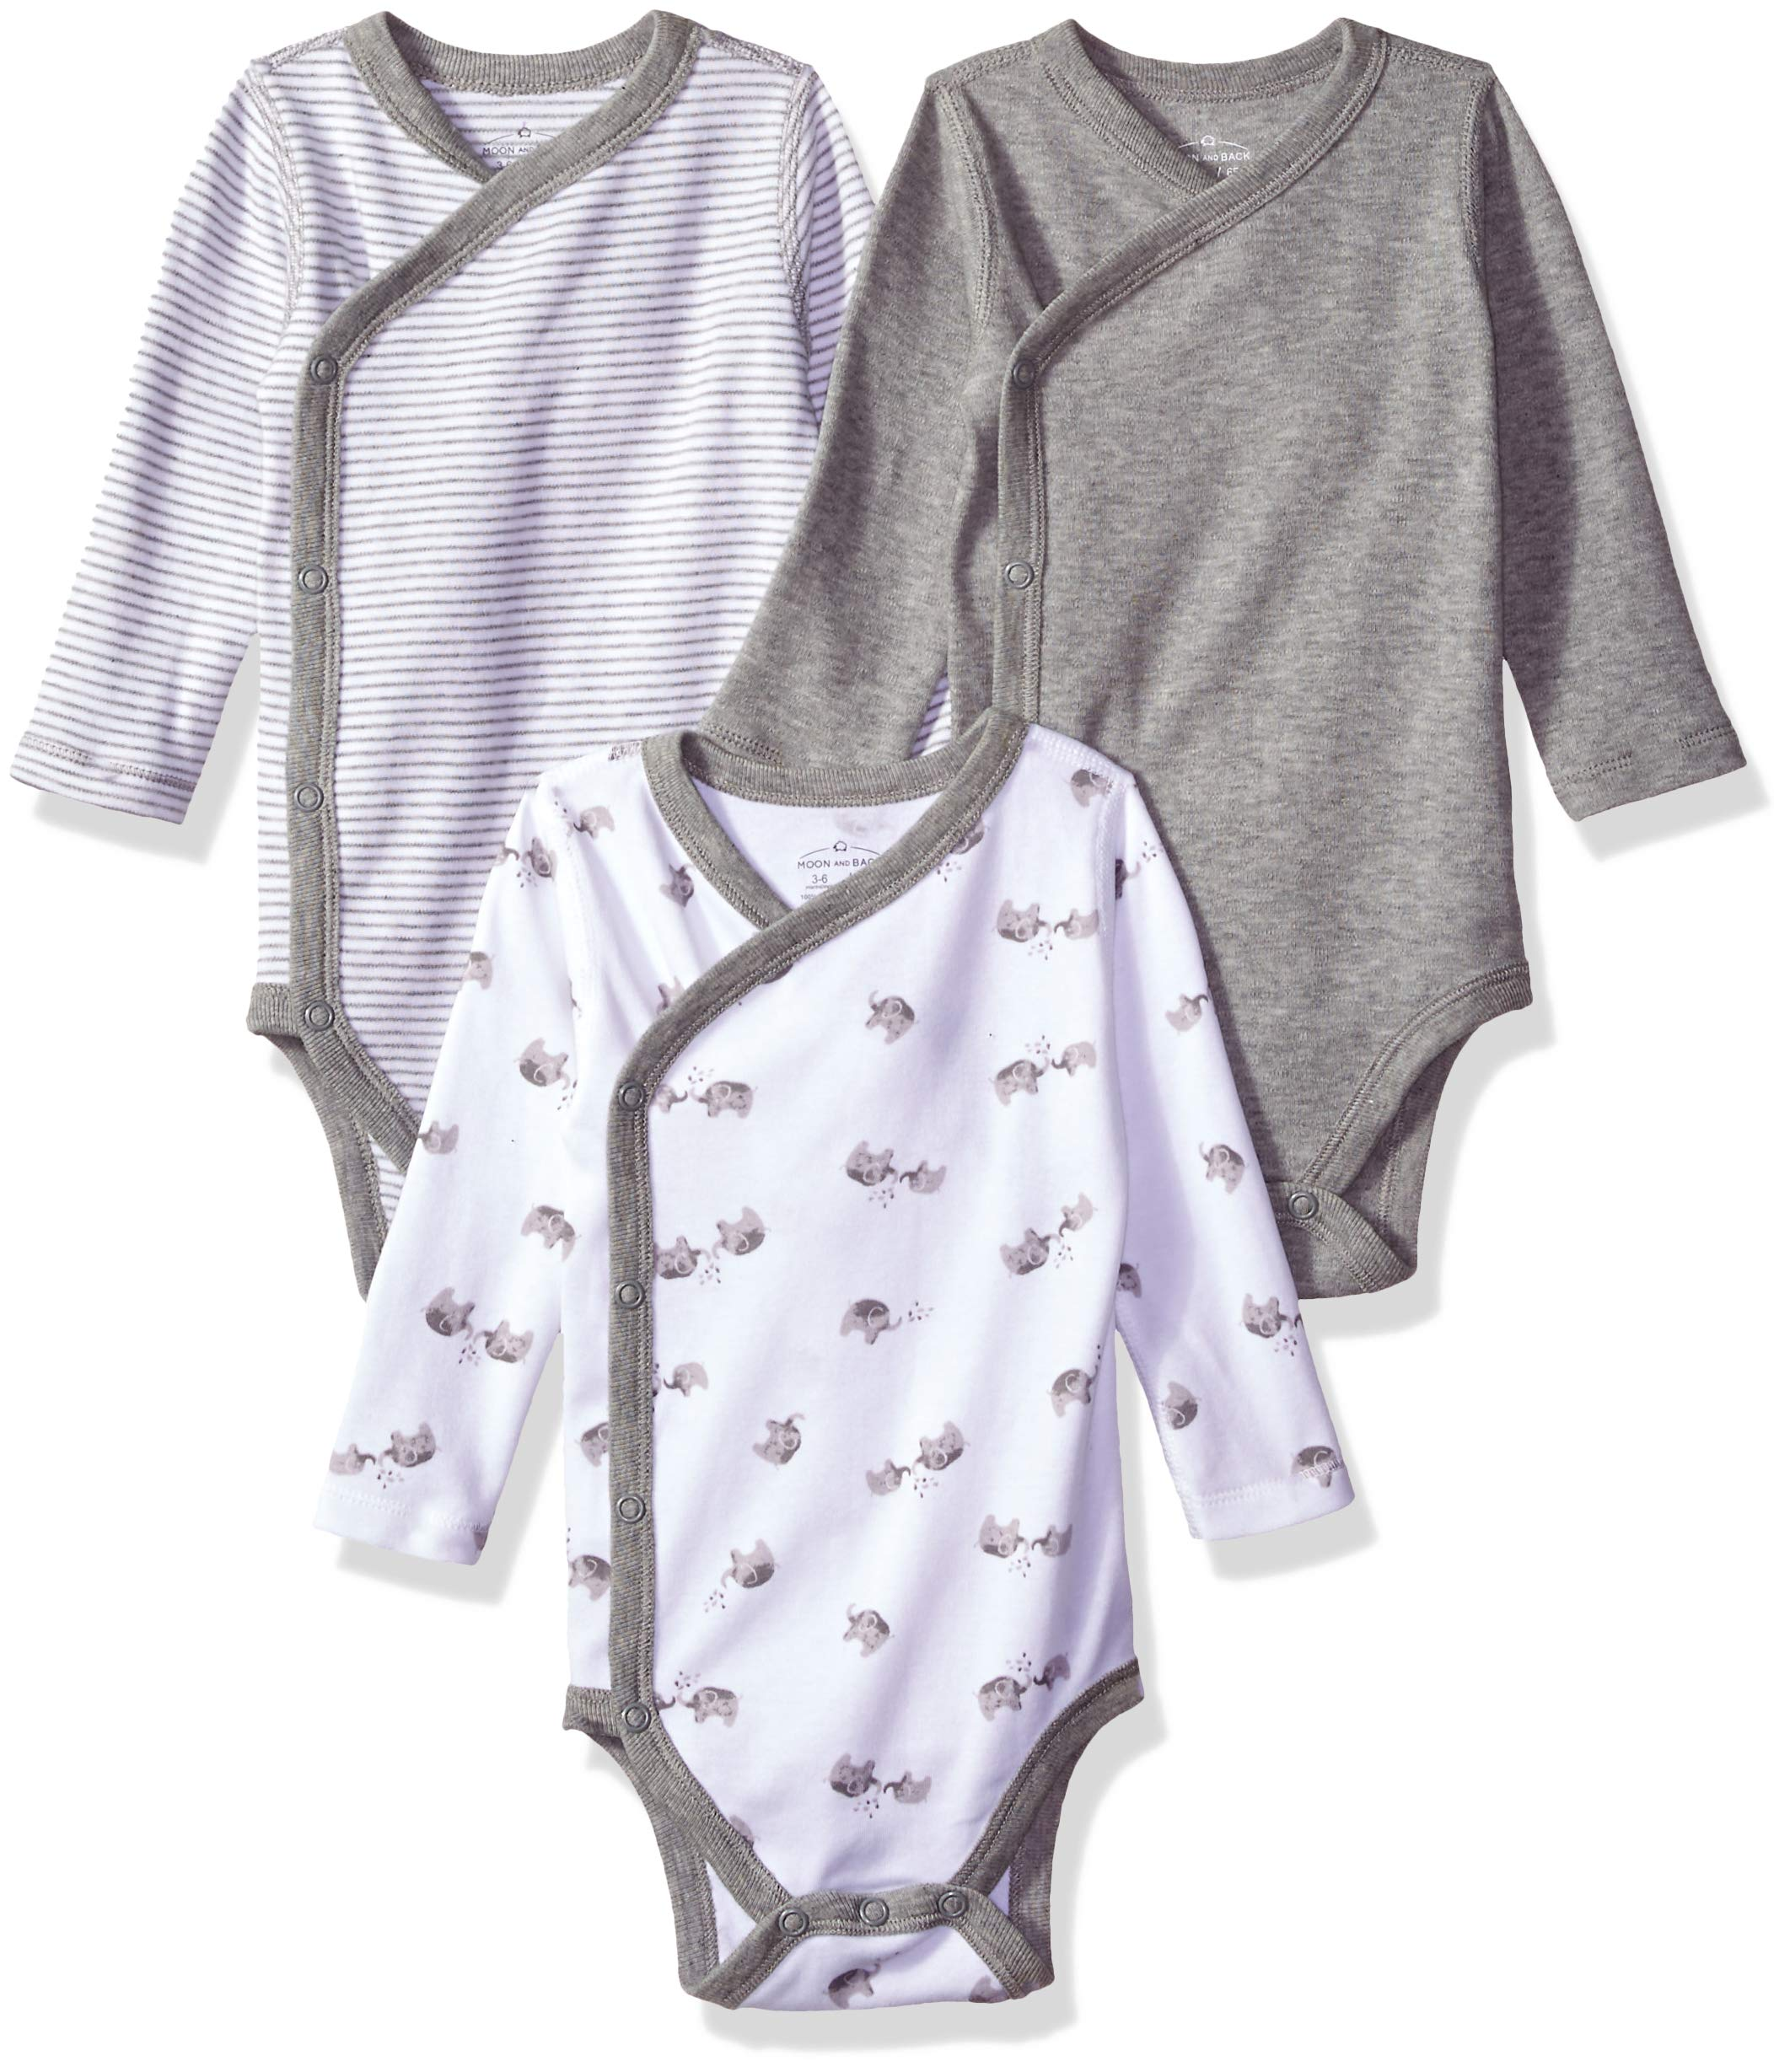 Moon and Back Baby Organic 3-Piece Long Sleeve Side Snap Bodysuits, Grey Heather, 0-3 Months by Moon and Back